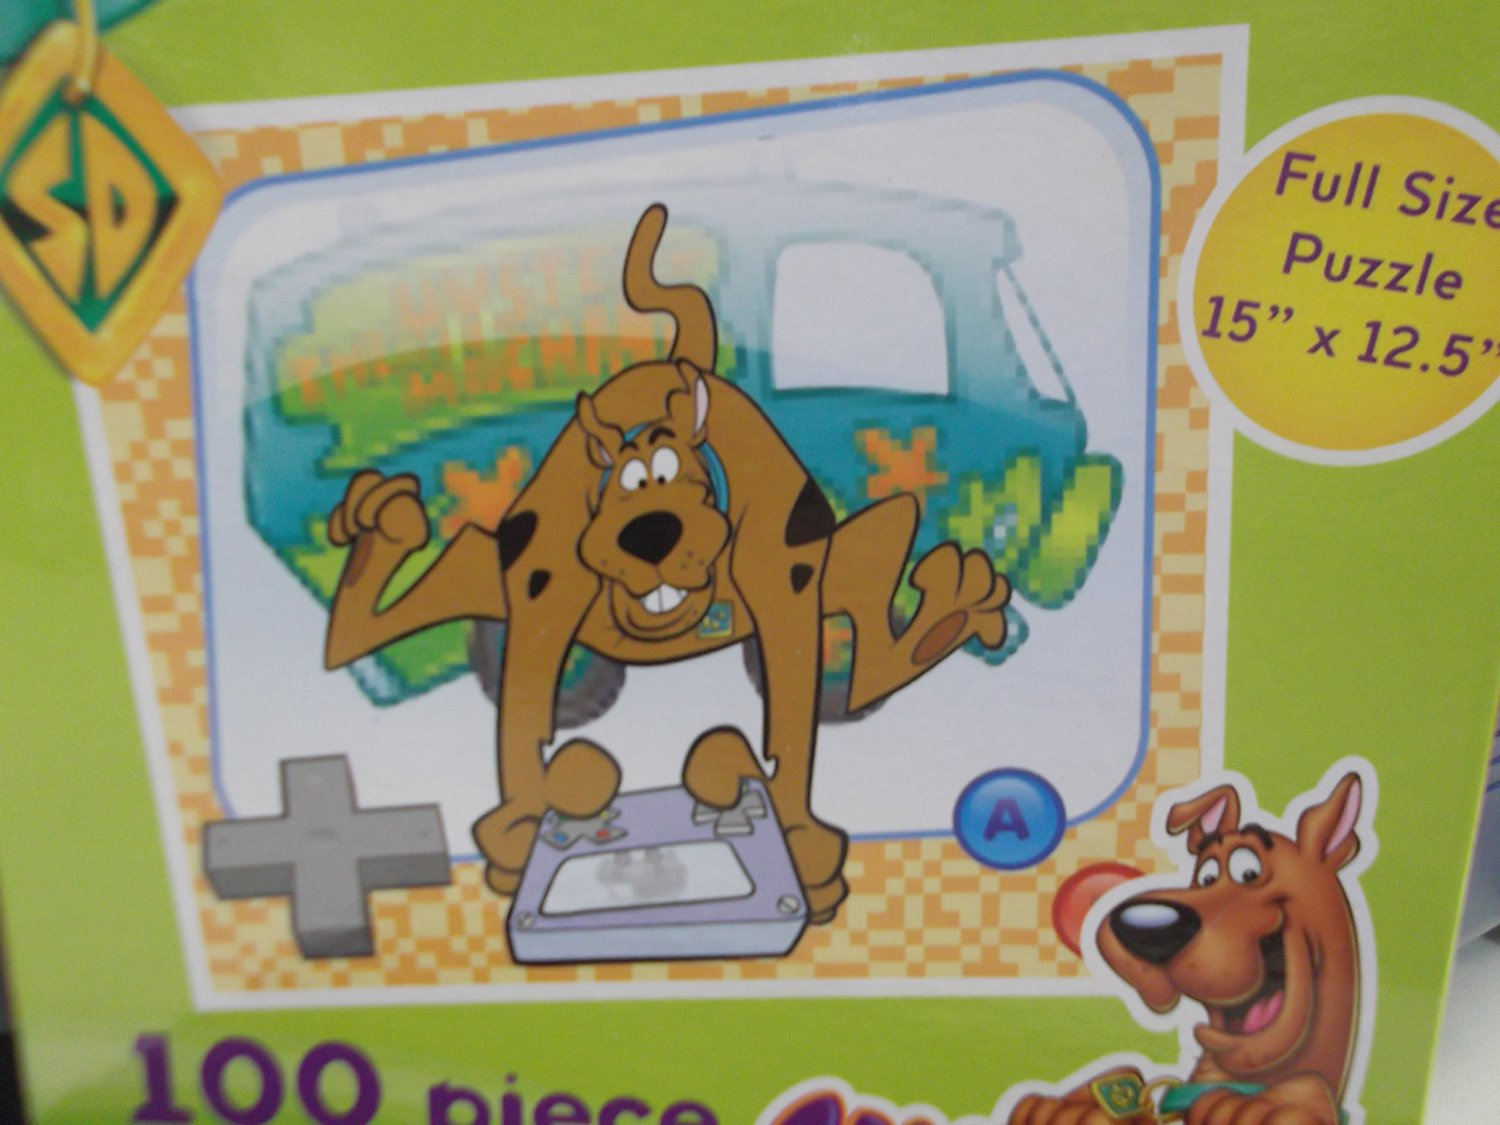 Scooby-doo! 100 Piece Puzzle Scooby-doo Playing Video Game, 100 pieces. By Pressman Toy by